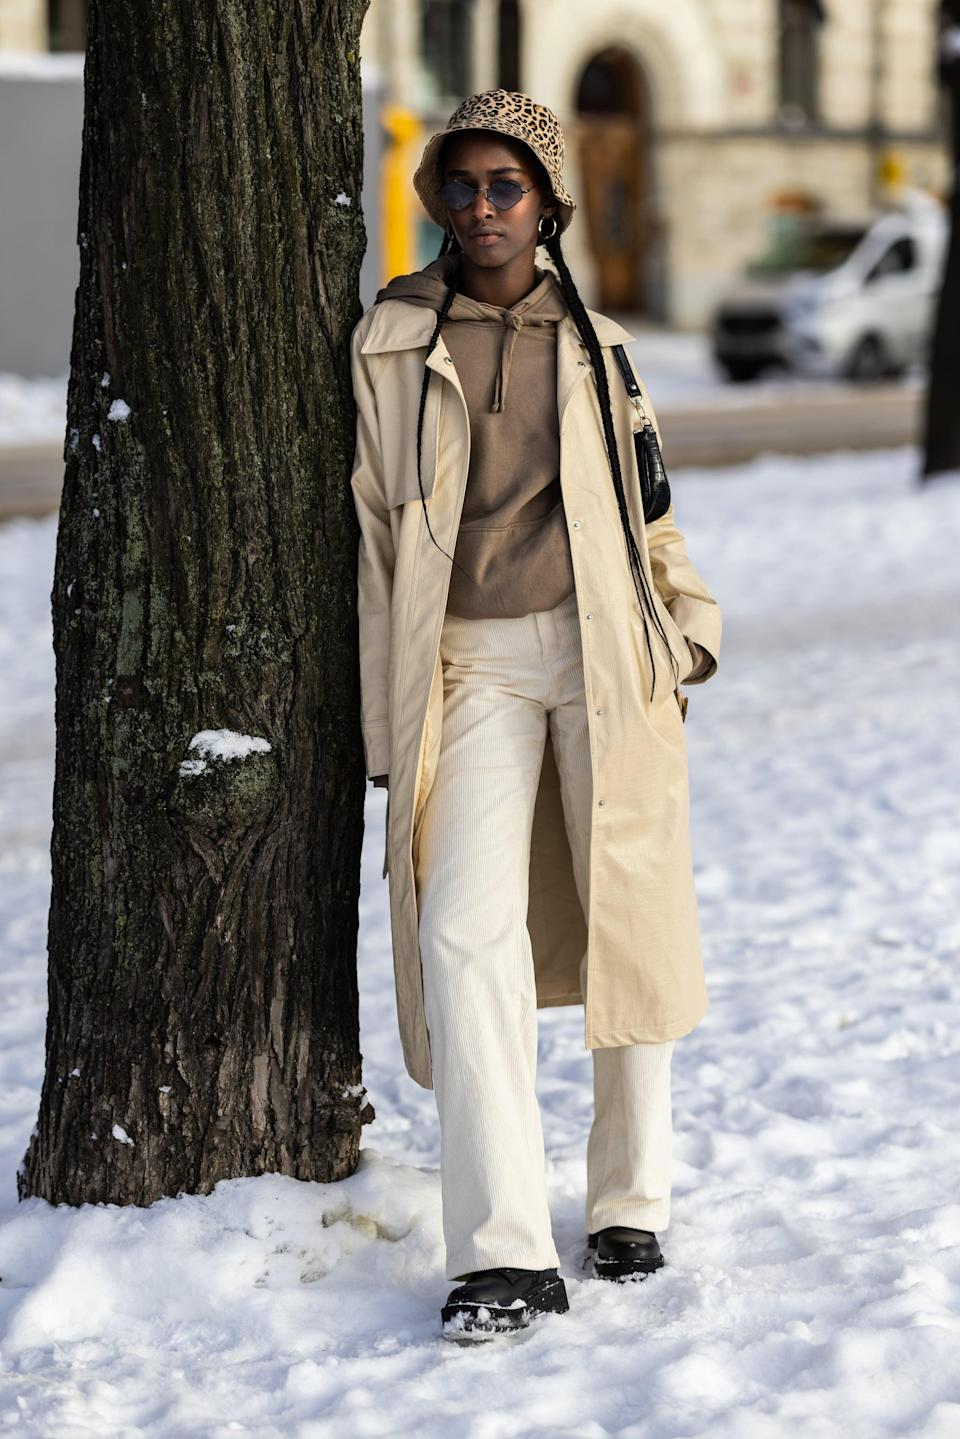 <p>Go for outerwear in shades like taupe, oatmeal, and ivory, and introduce a touch of leopard to tie them together in the form of a bag or a hat.</p>